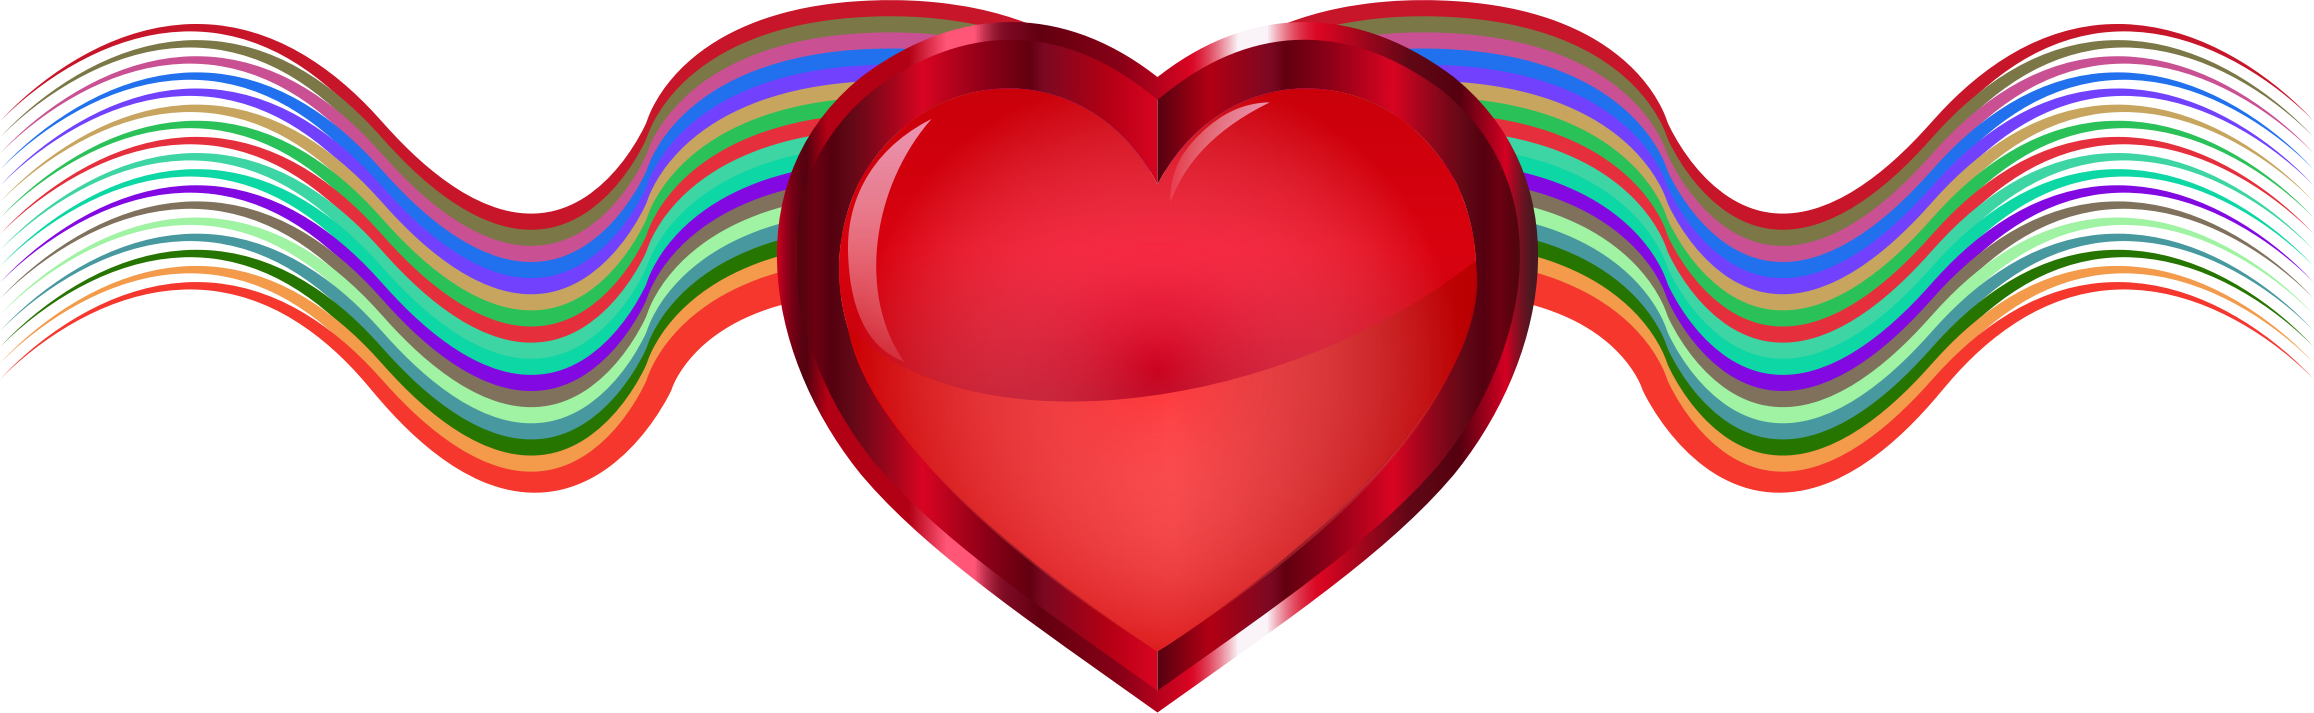 Vermillion ribbons big image. Waves clipart heart